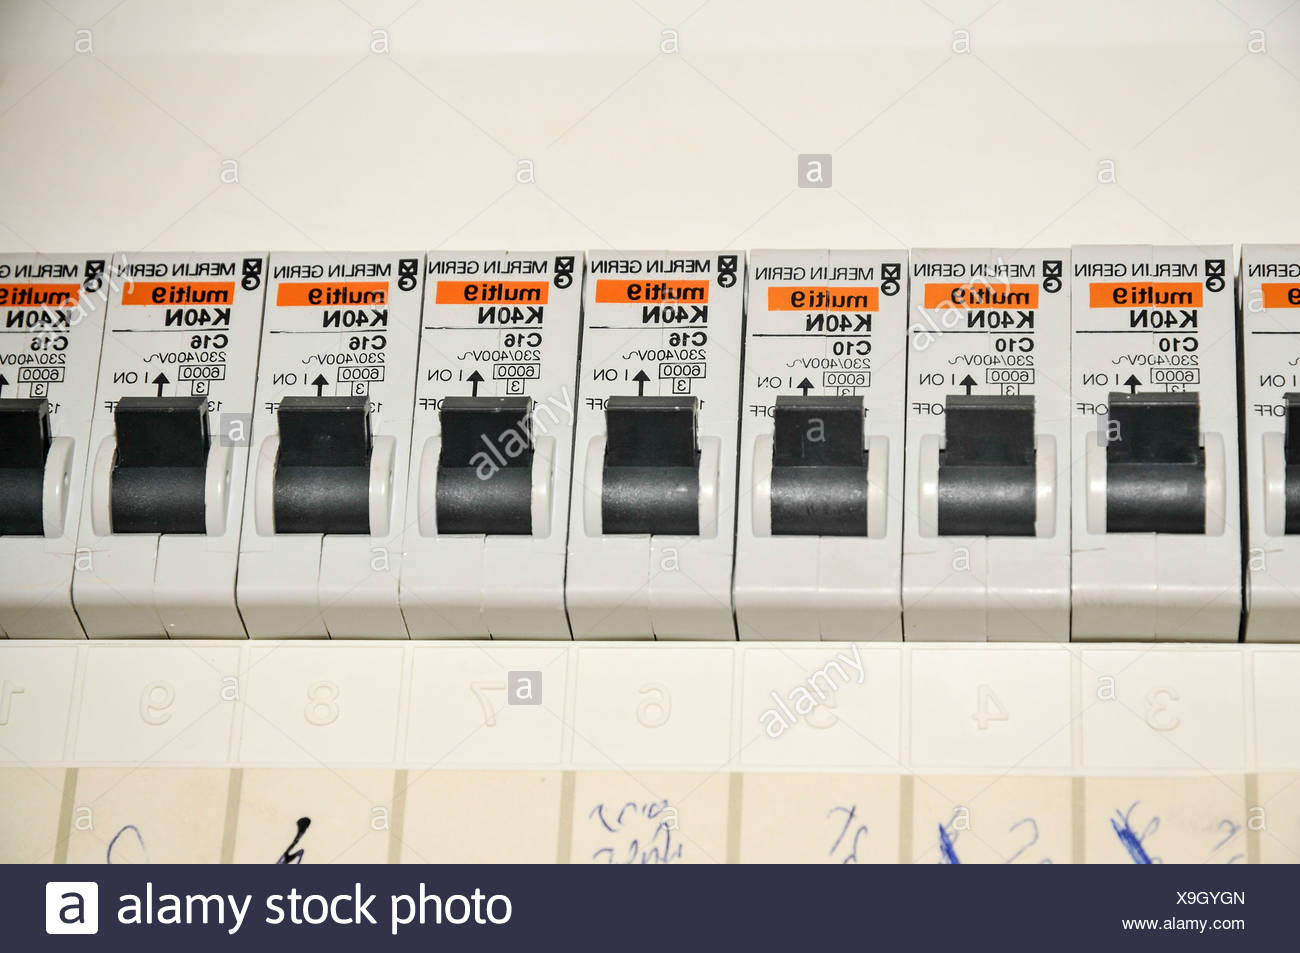 Breaker Fuse Box Switch Worksheet And Wiring Diagram Outdated Domestic Close Up With Trip Switches Circuit Breakers Stock Rh Alamy Com On Off Central Air Old Fuses